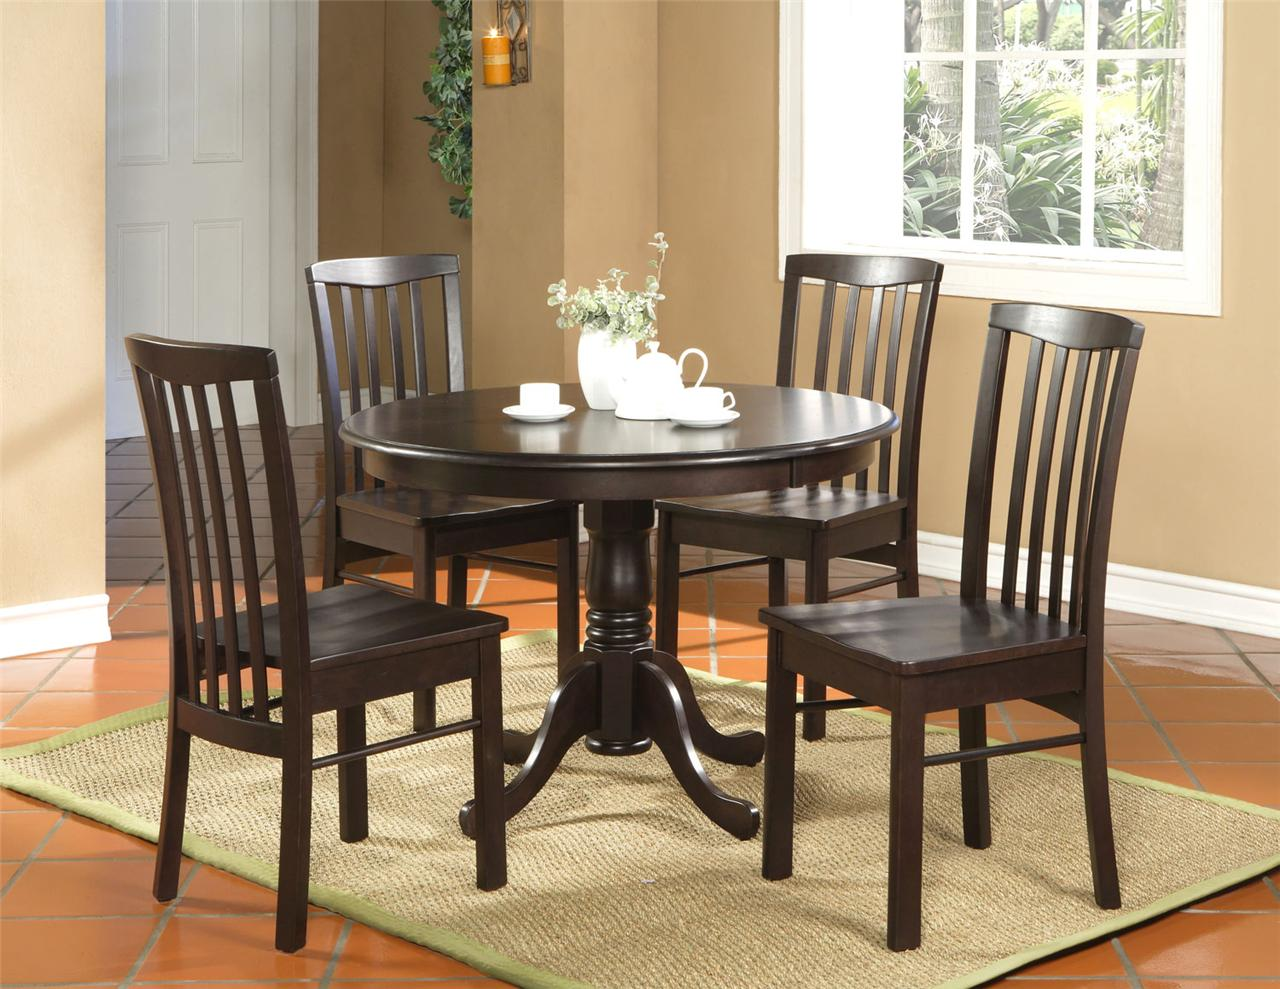 Table And Chairs Set 5pc Round Kitchen Dinette Set Table And 4 Chairs Walnut Ebay